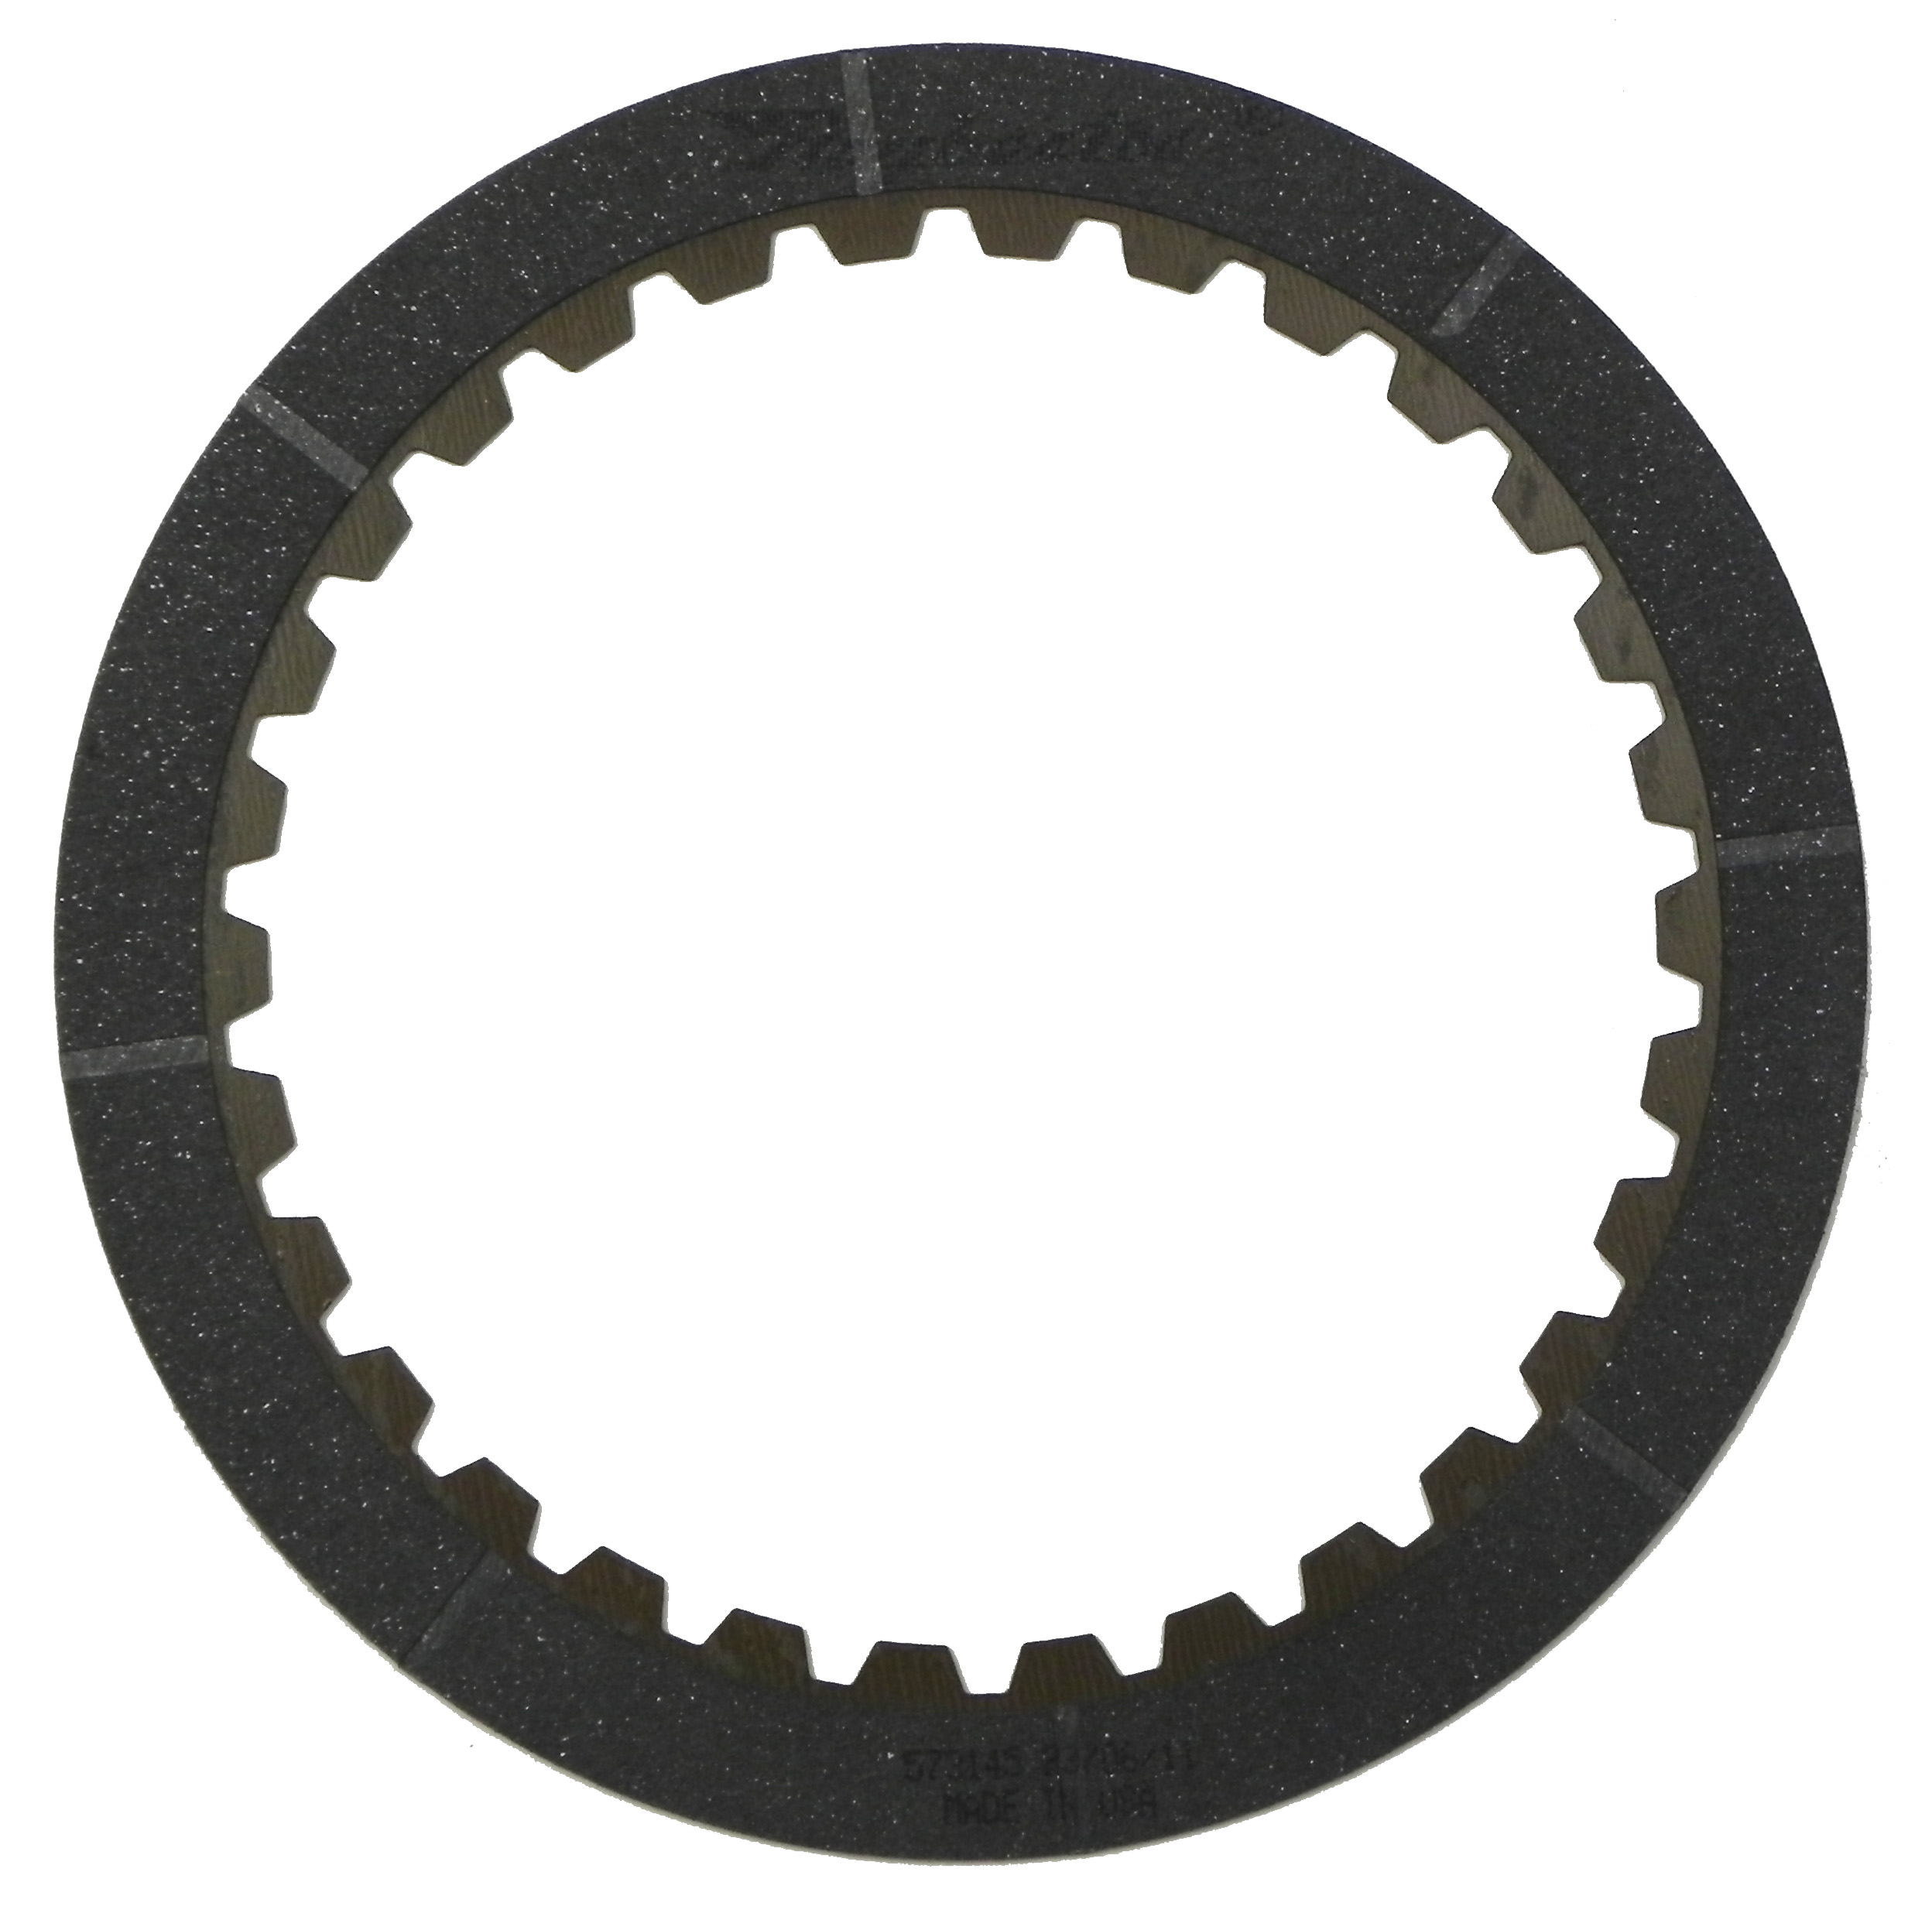 R573145 | 2002-2009 Friction Clutch Plate High Energy High Clutch High Energy